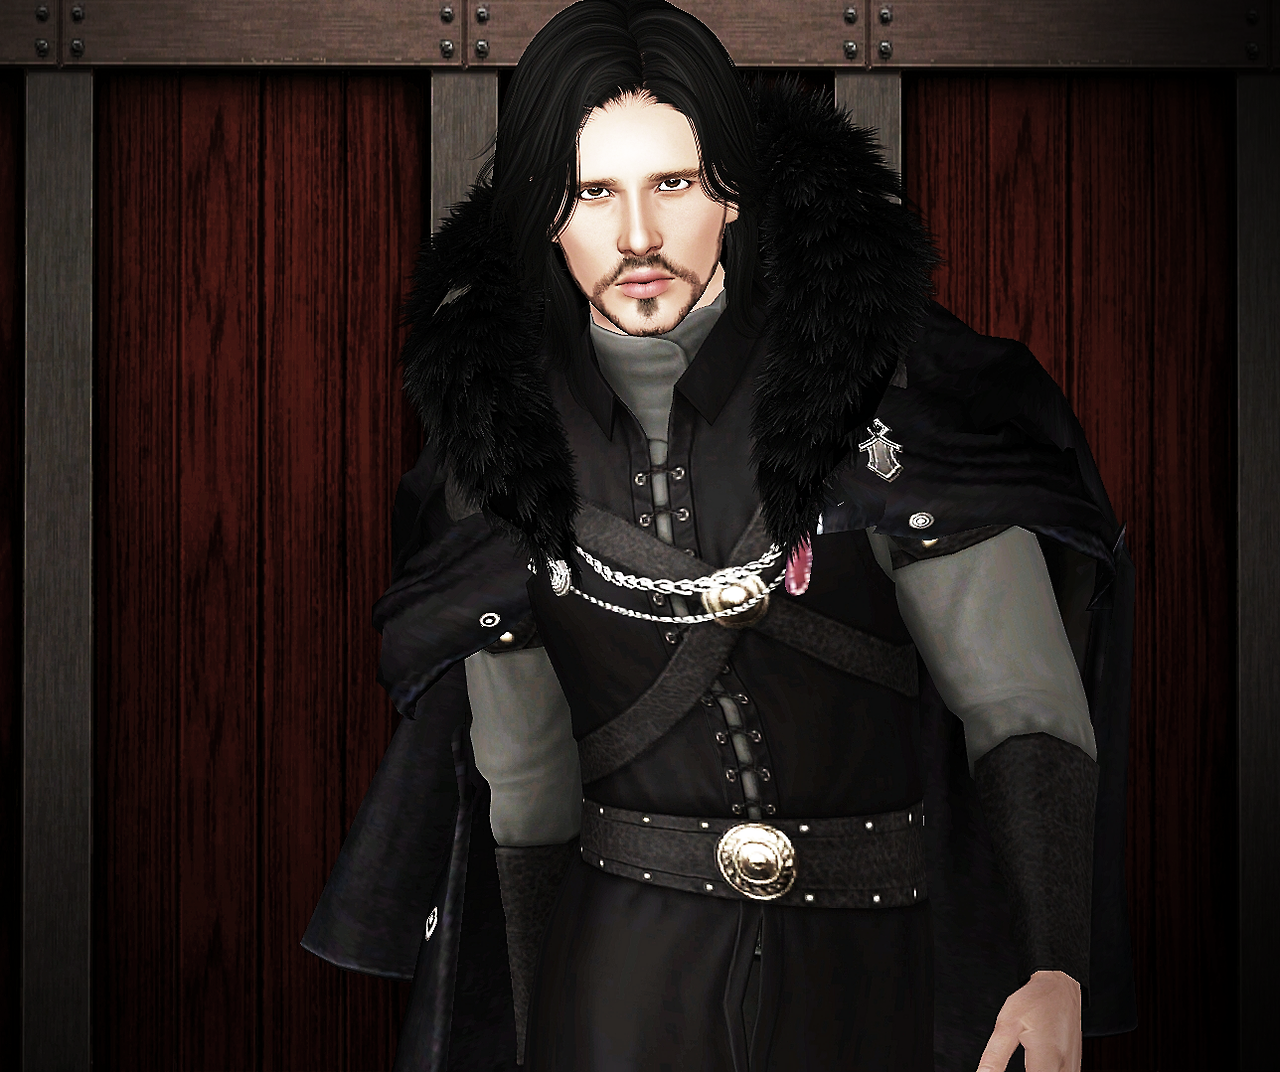 game of thrones sims 3 tumblr s